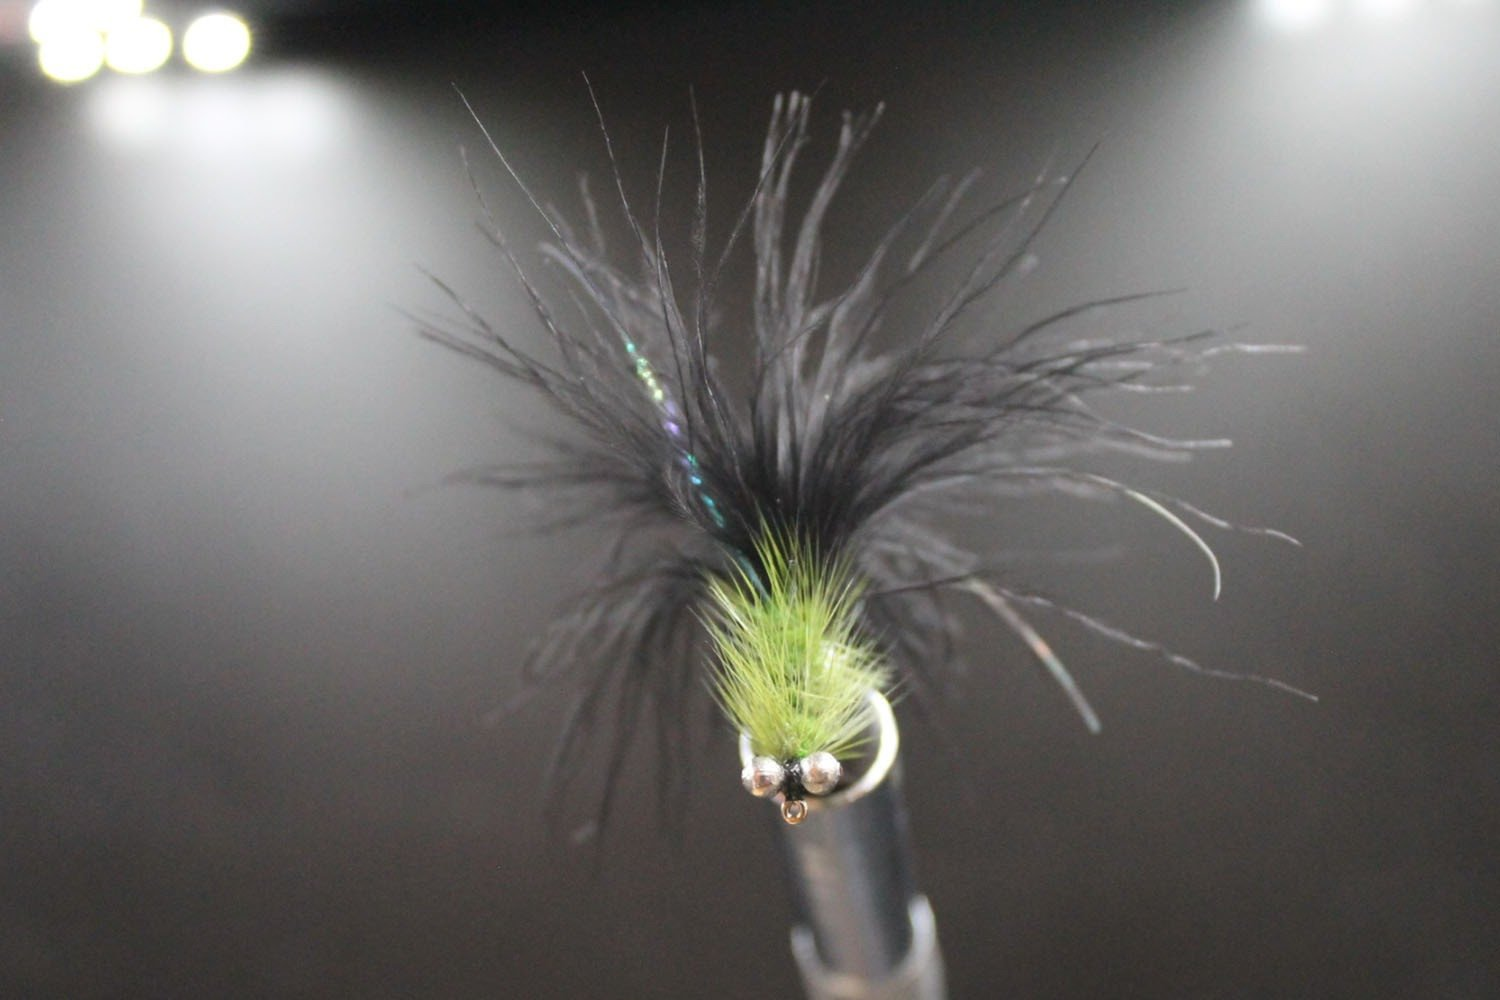 Olive and Black Humungous